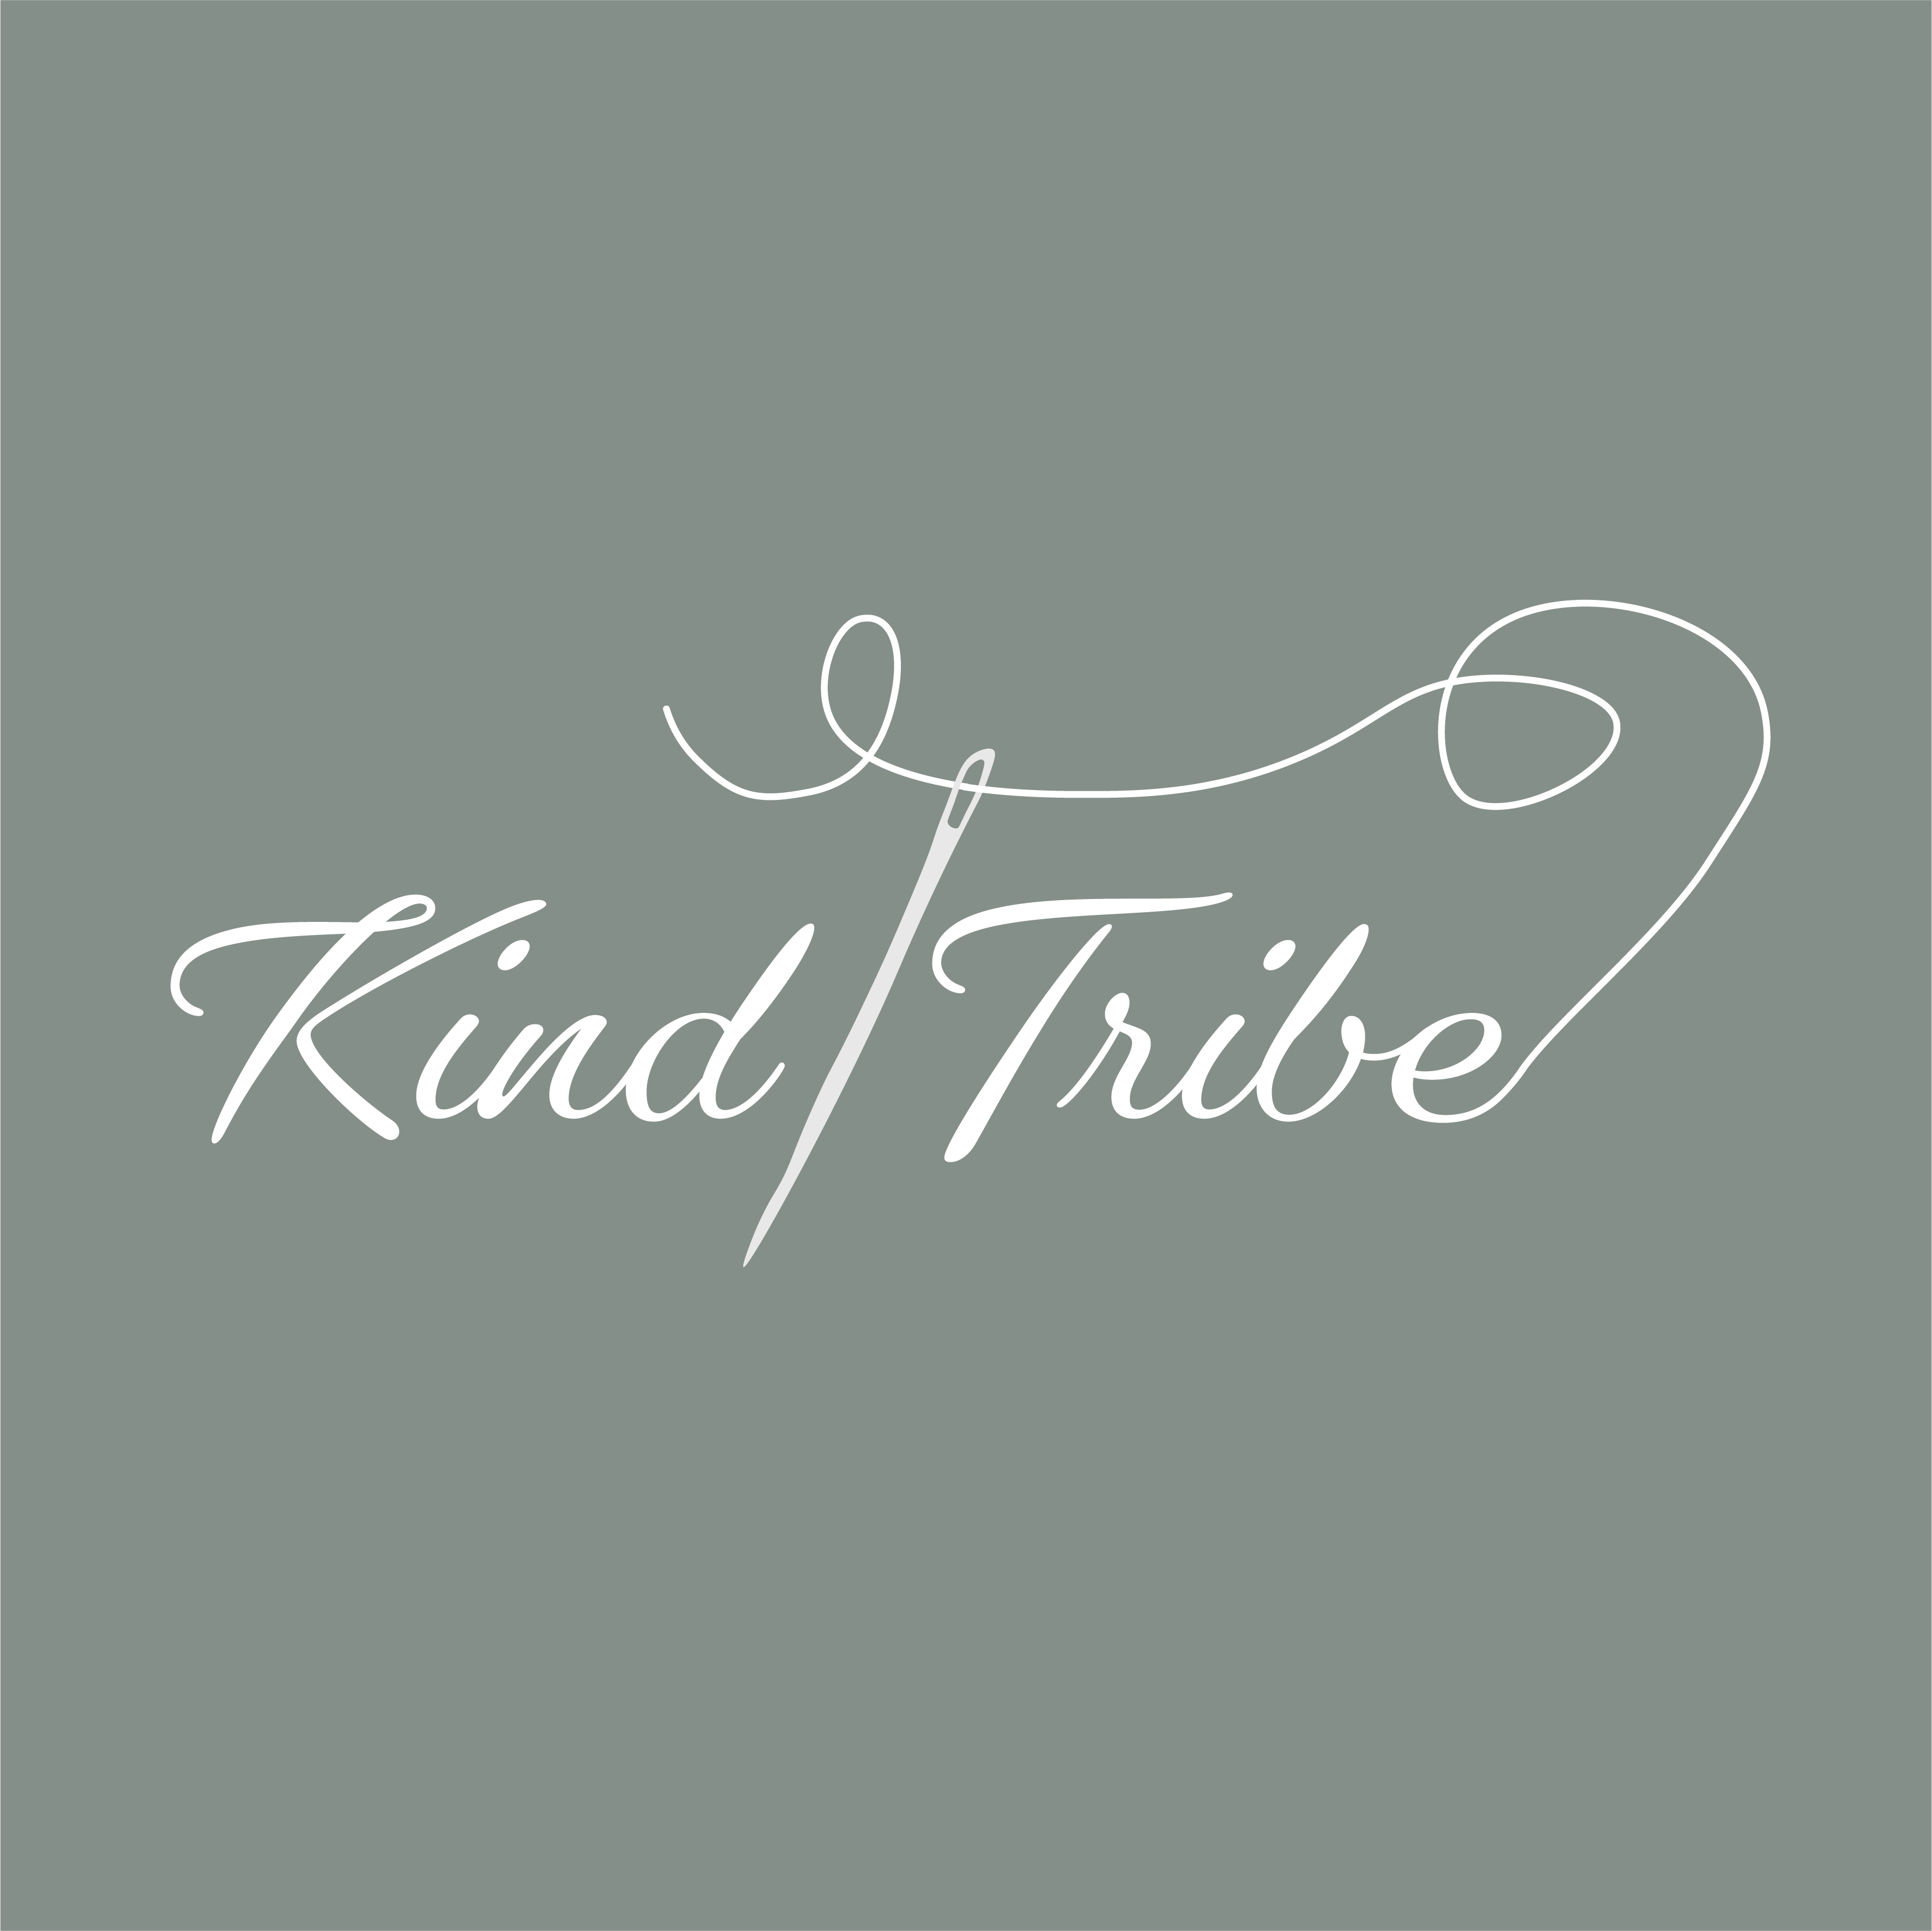 A logo design for a knitting company with a thread going through a needle